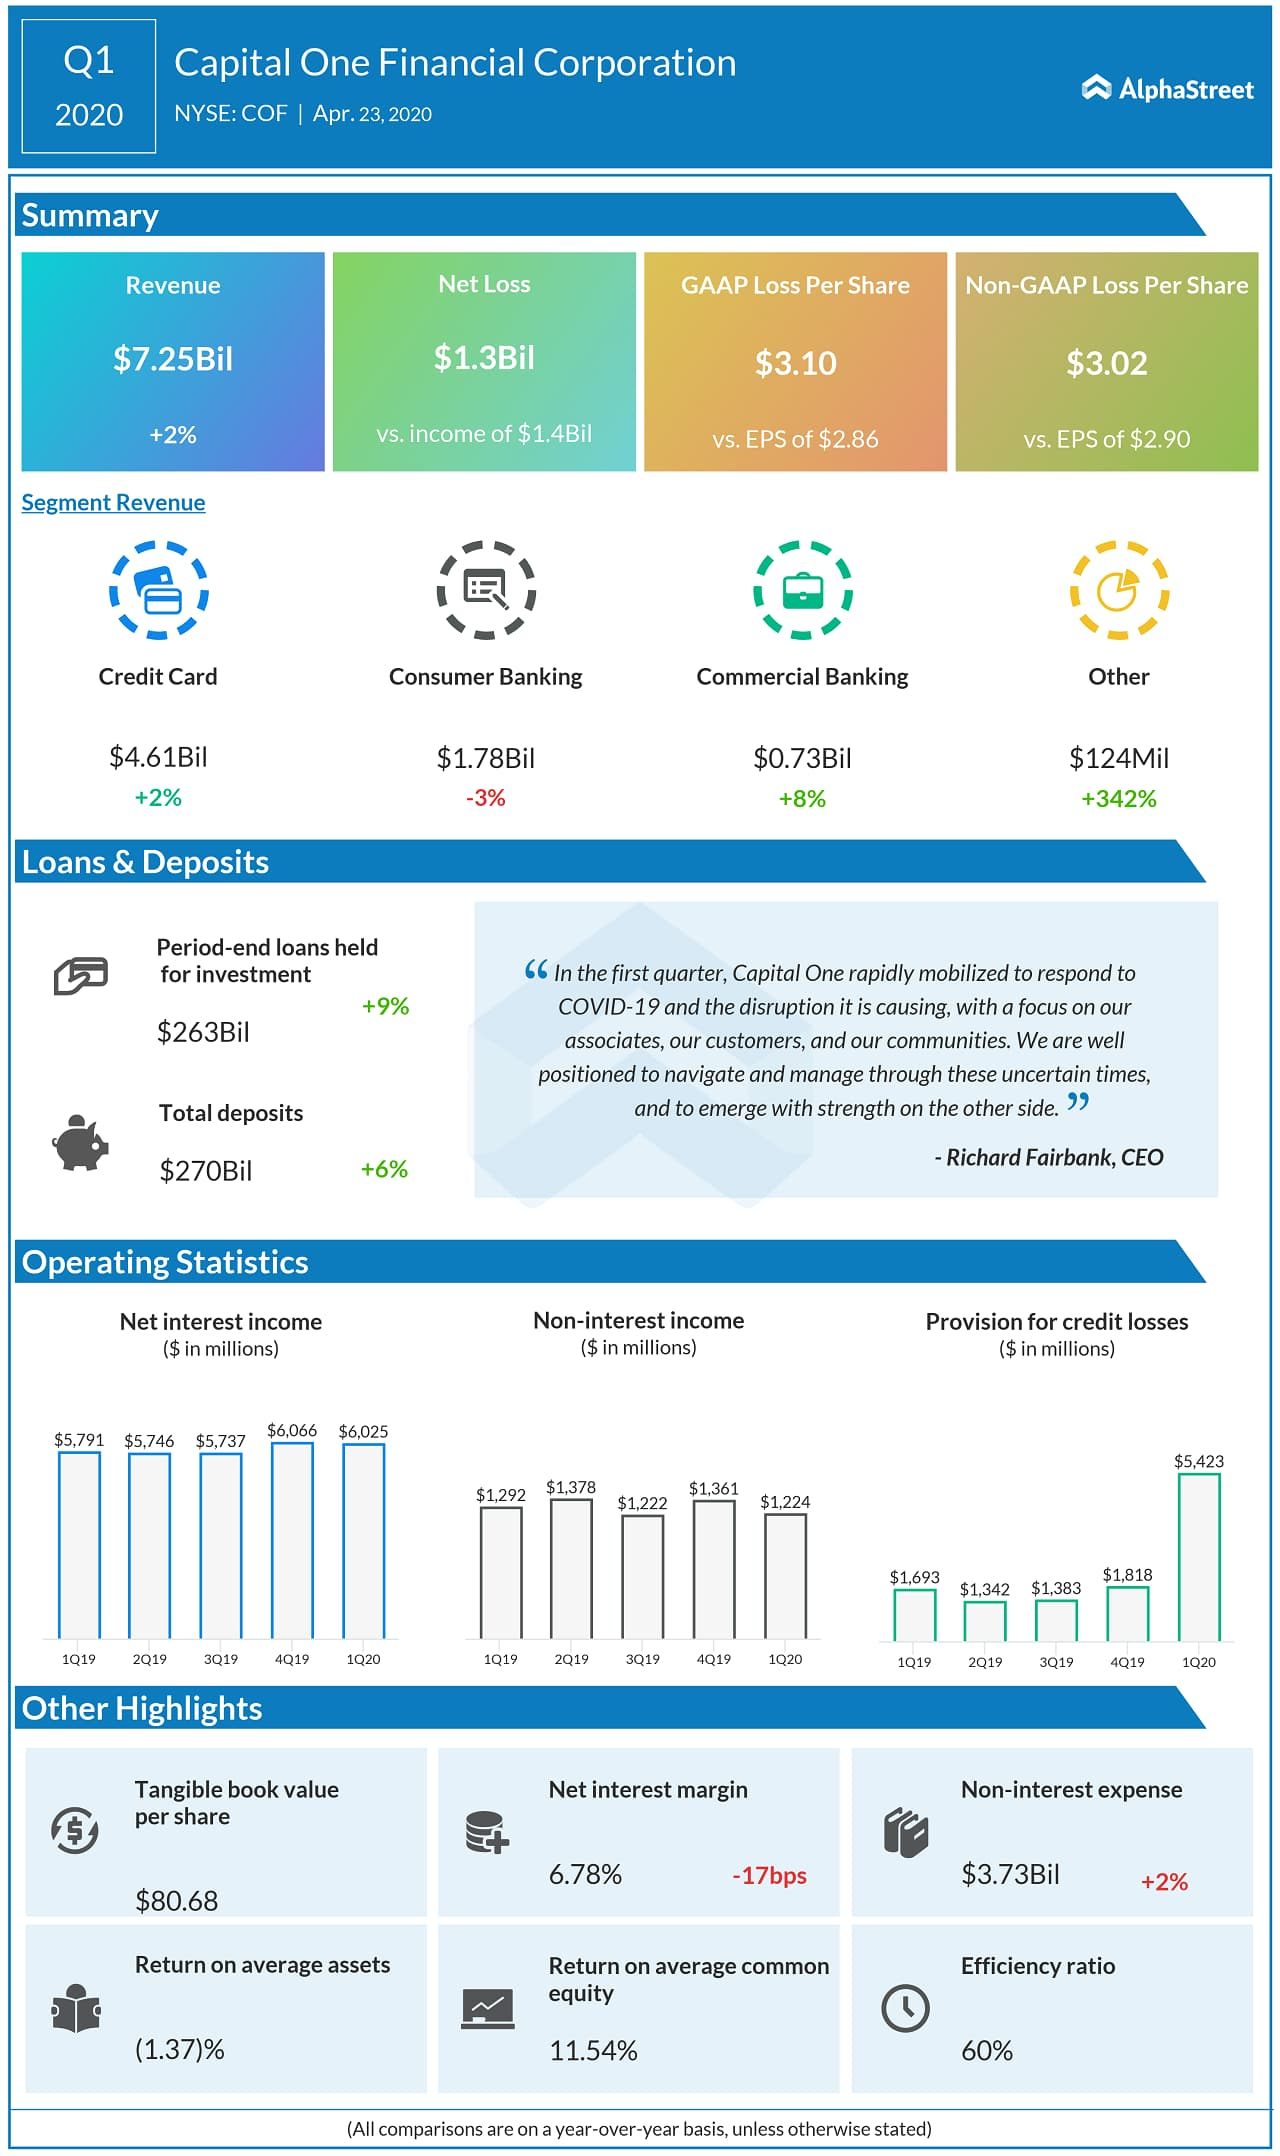 Capital One Financial (COF) Q1 2020 earnings infograph